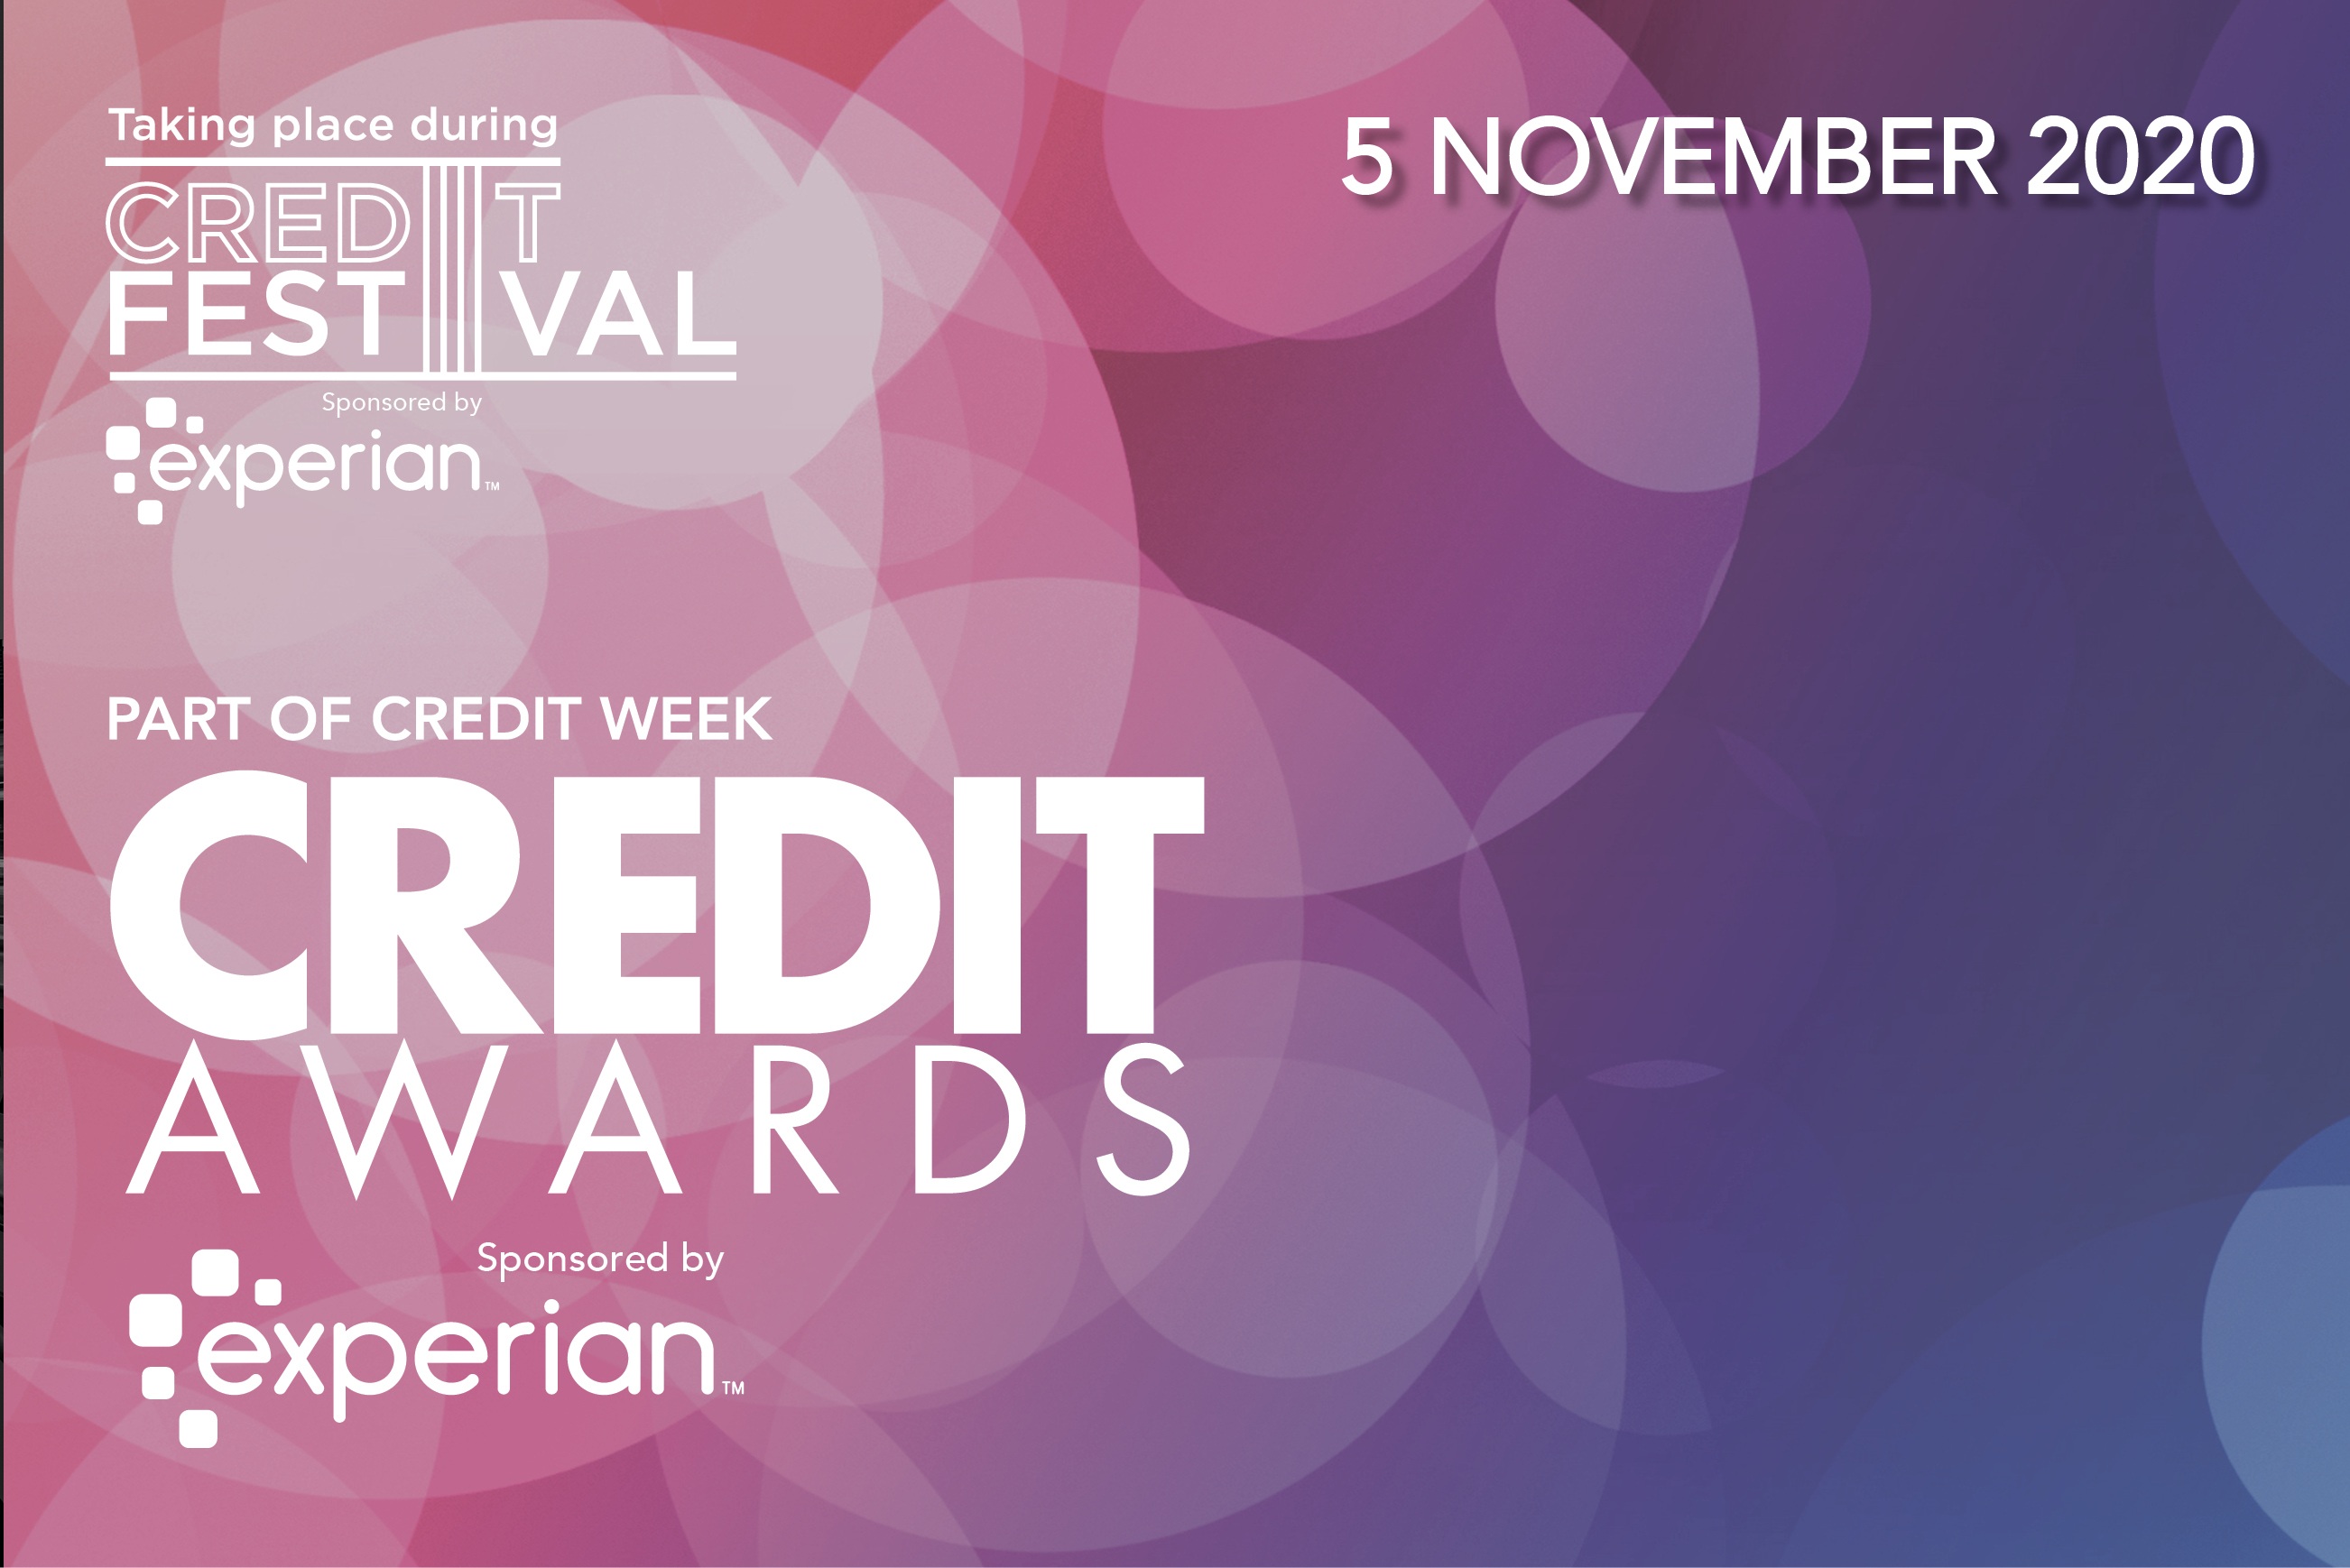 Credit Awards